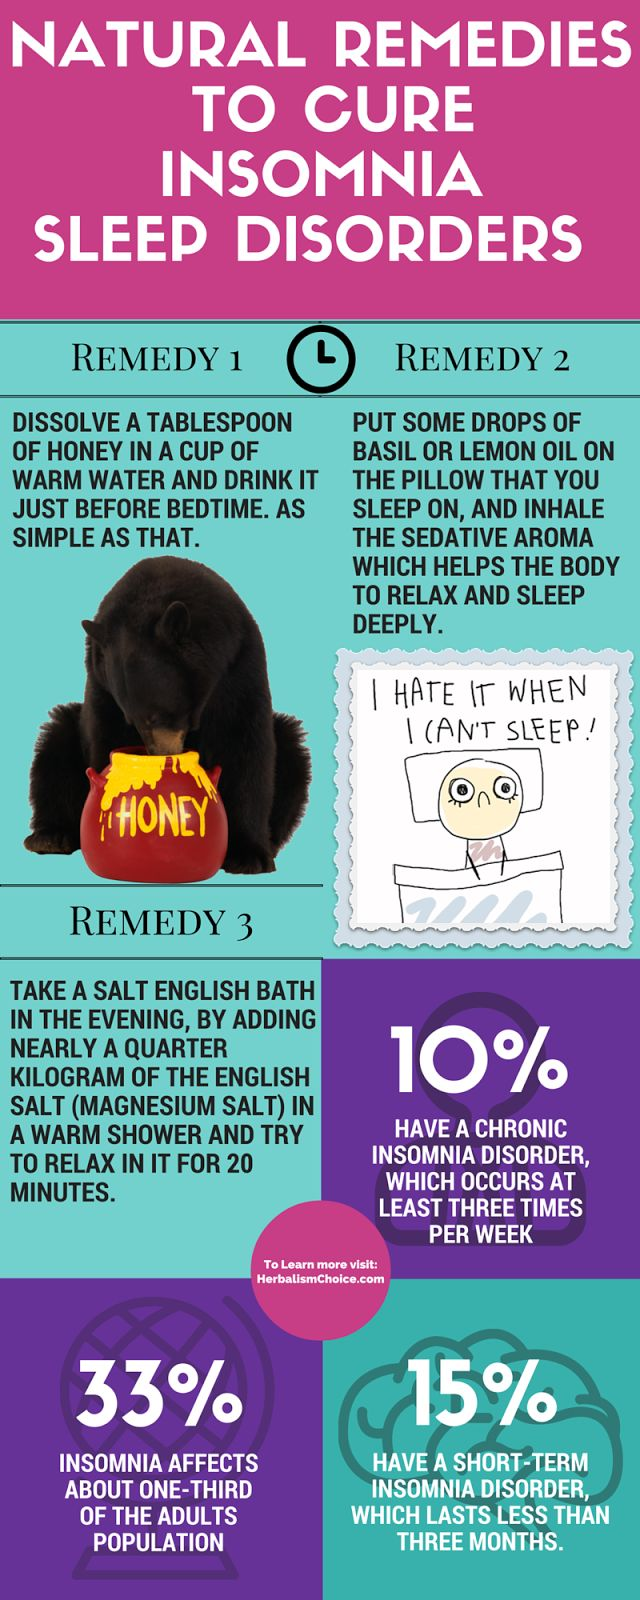 Natural remedies to cure insomnia and sleep disorders, For remedy details visit our page: http://www.herbalismchoice.com/2016/03/natural-remedies-to-cure-insomnia-sleep-disorders.html #insomnia #sleepdisorder @sleep #sleeptrouble